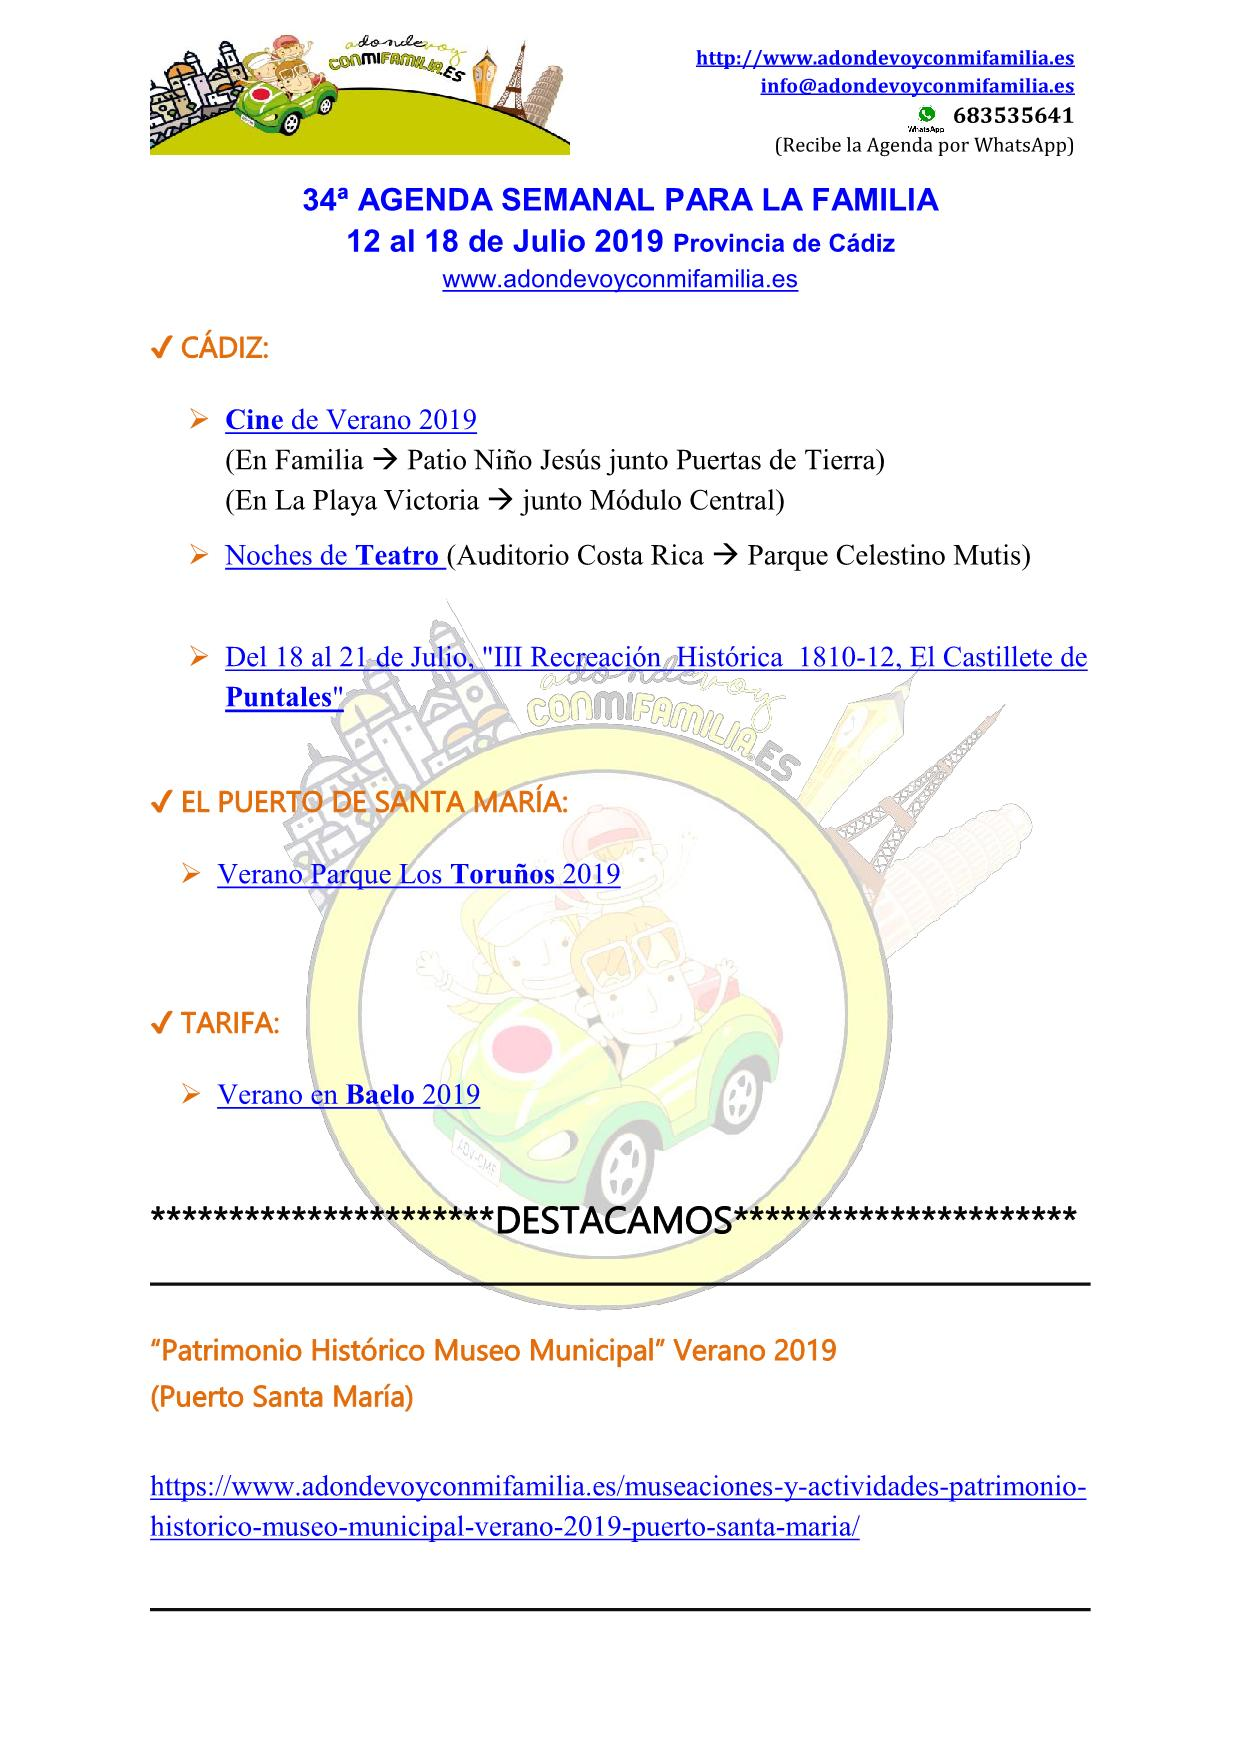 034 Agenda semanal familiar 12 al 18 Julio 2019